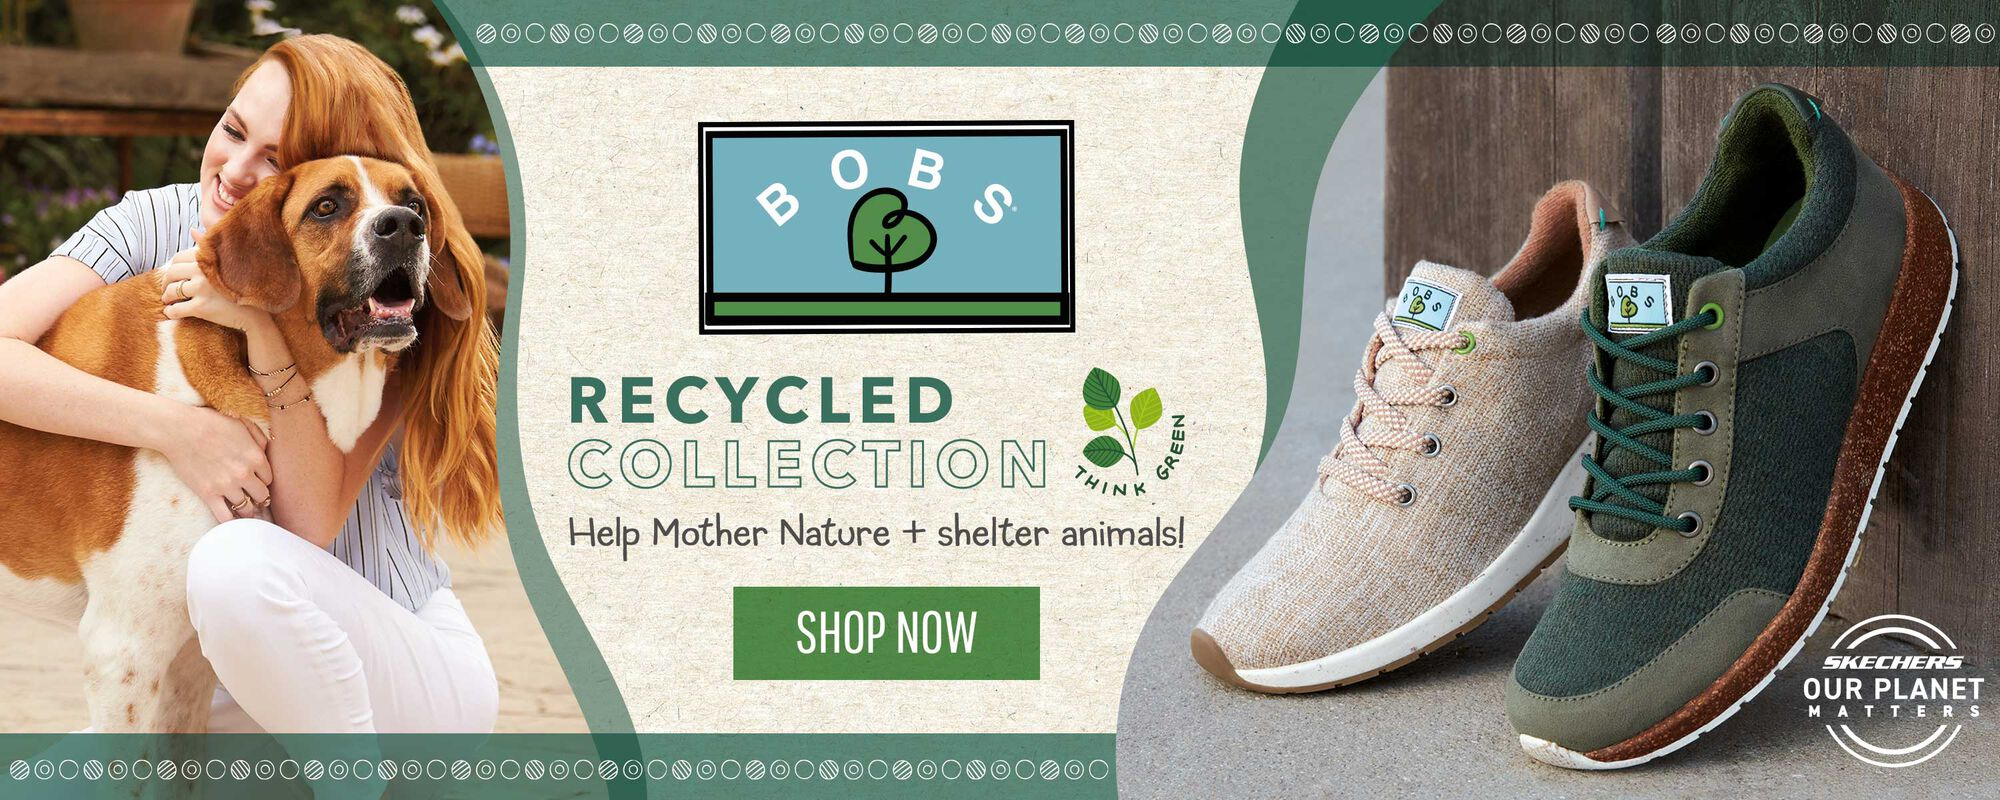 BOBs Recycled Collection - Help Mother Nature + shelter animals  - Shop Now - Skechers Our Planet Matters